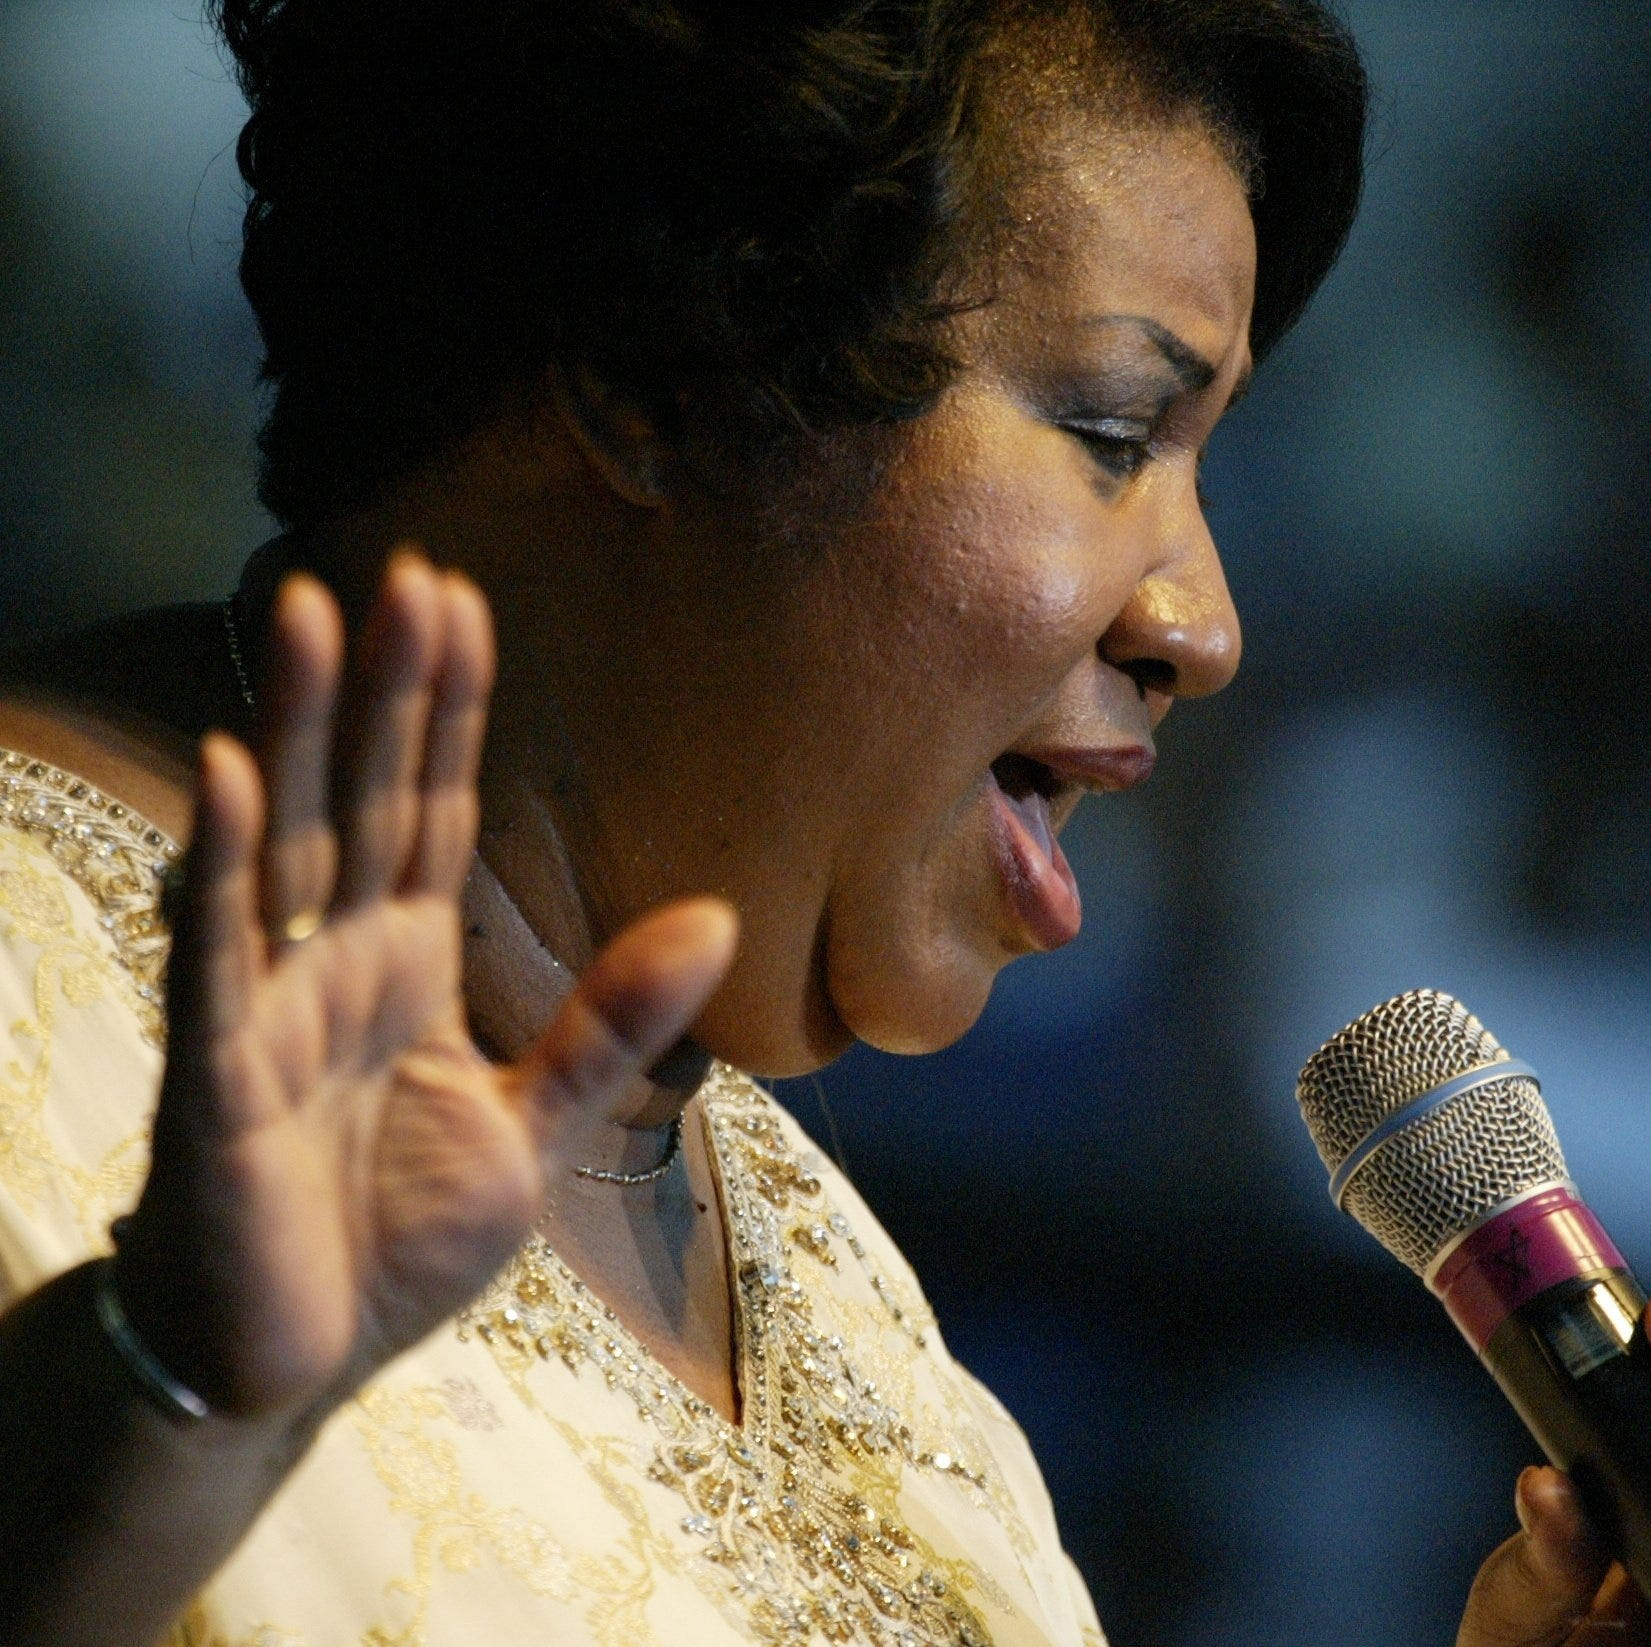 3 handwritten wills found in Aretha Franklin's home, lawyer says